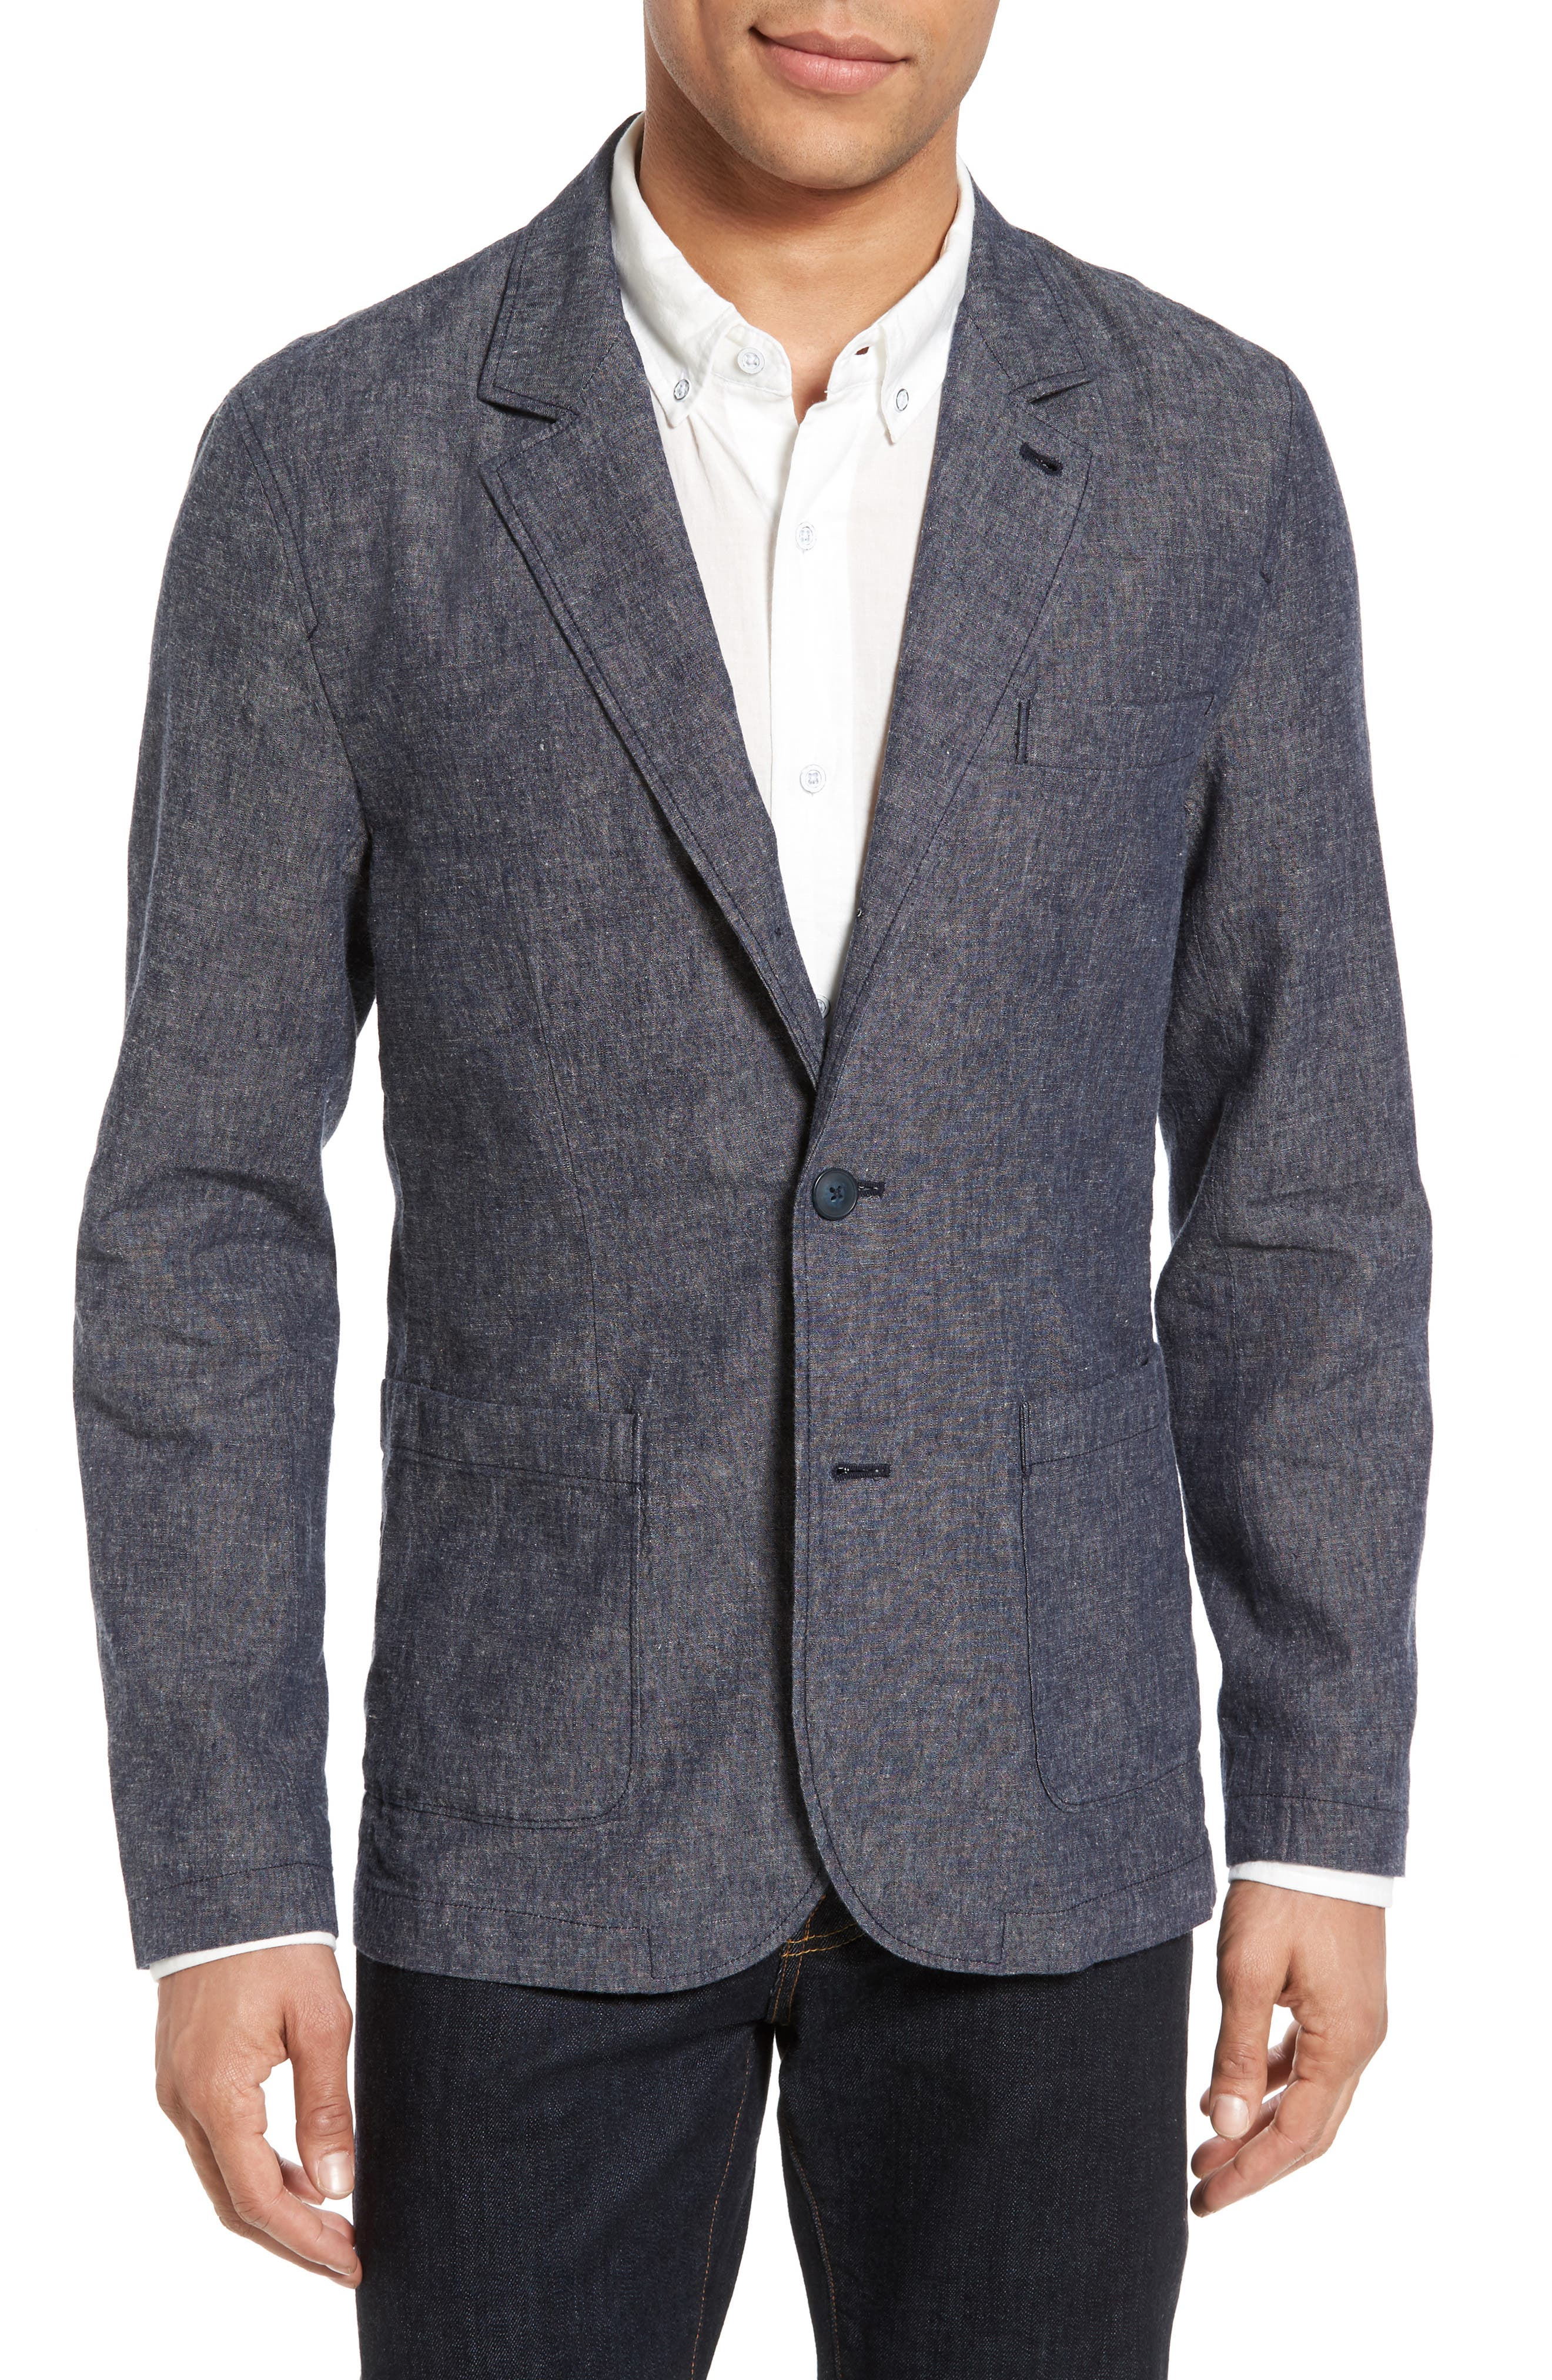 Trunnel Slim Fit Linen Blend Blazer,                             Main thumbnail 1, color,                             485